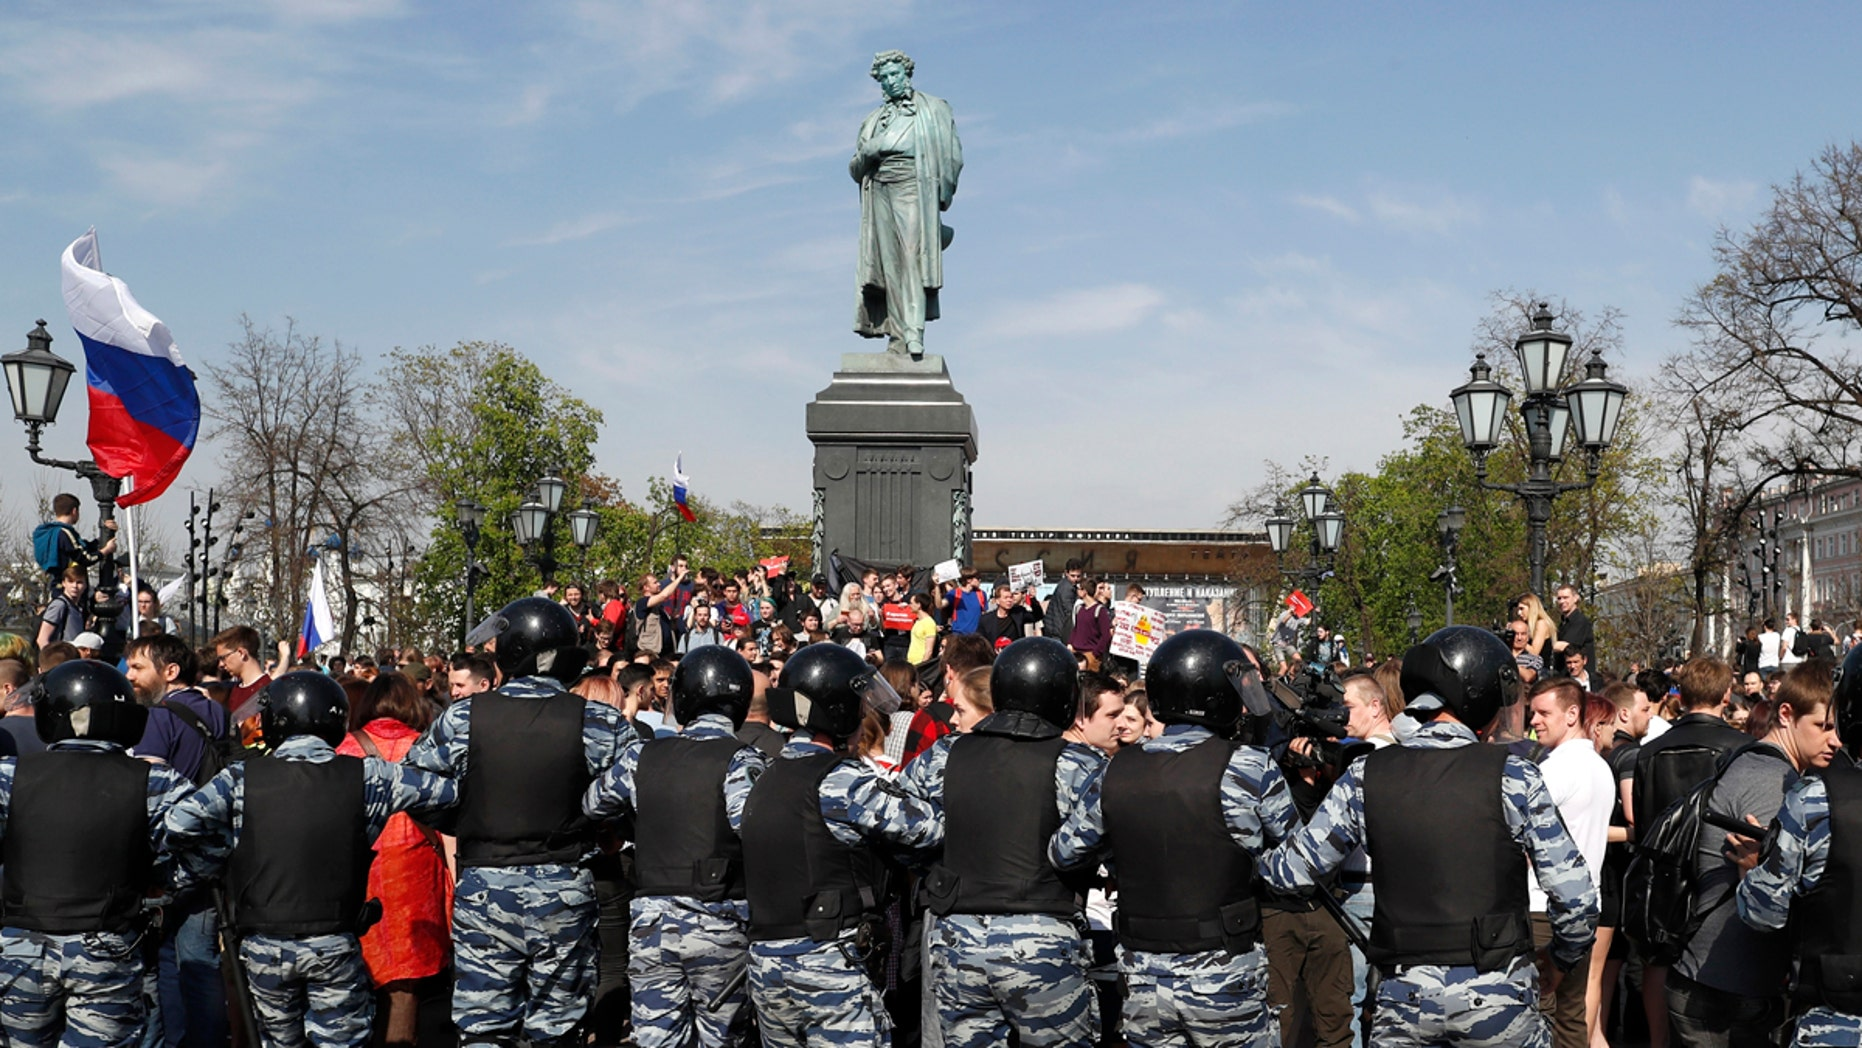 Russian police push protesters back during a demonstration against President Vladimir Putin in Pushkin Square in Moscow, Russia, Saturday, May 5, 2018.